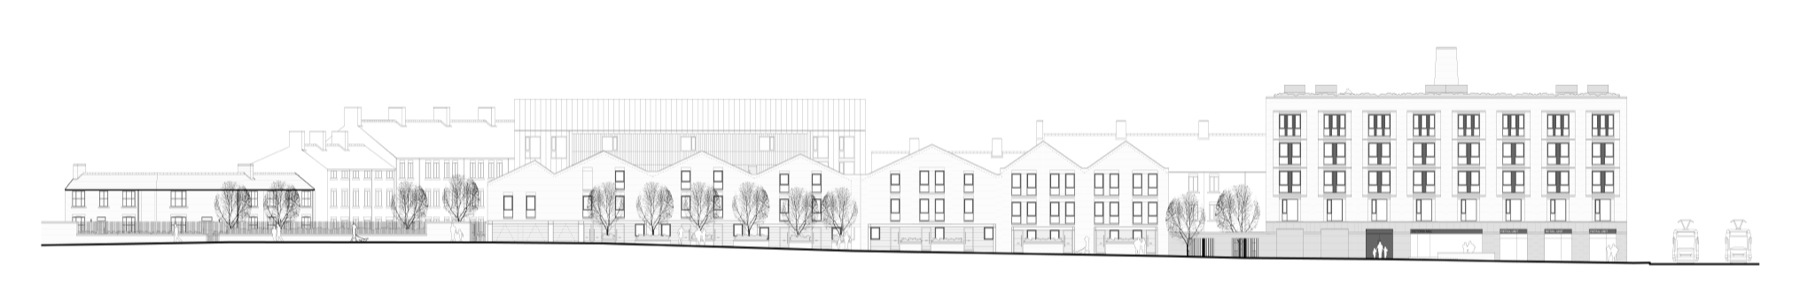 A160_PROPOSED BUCKLEY STREET ELEVATION